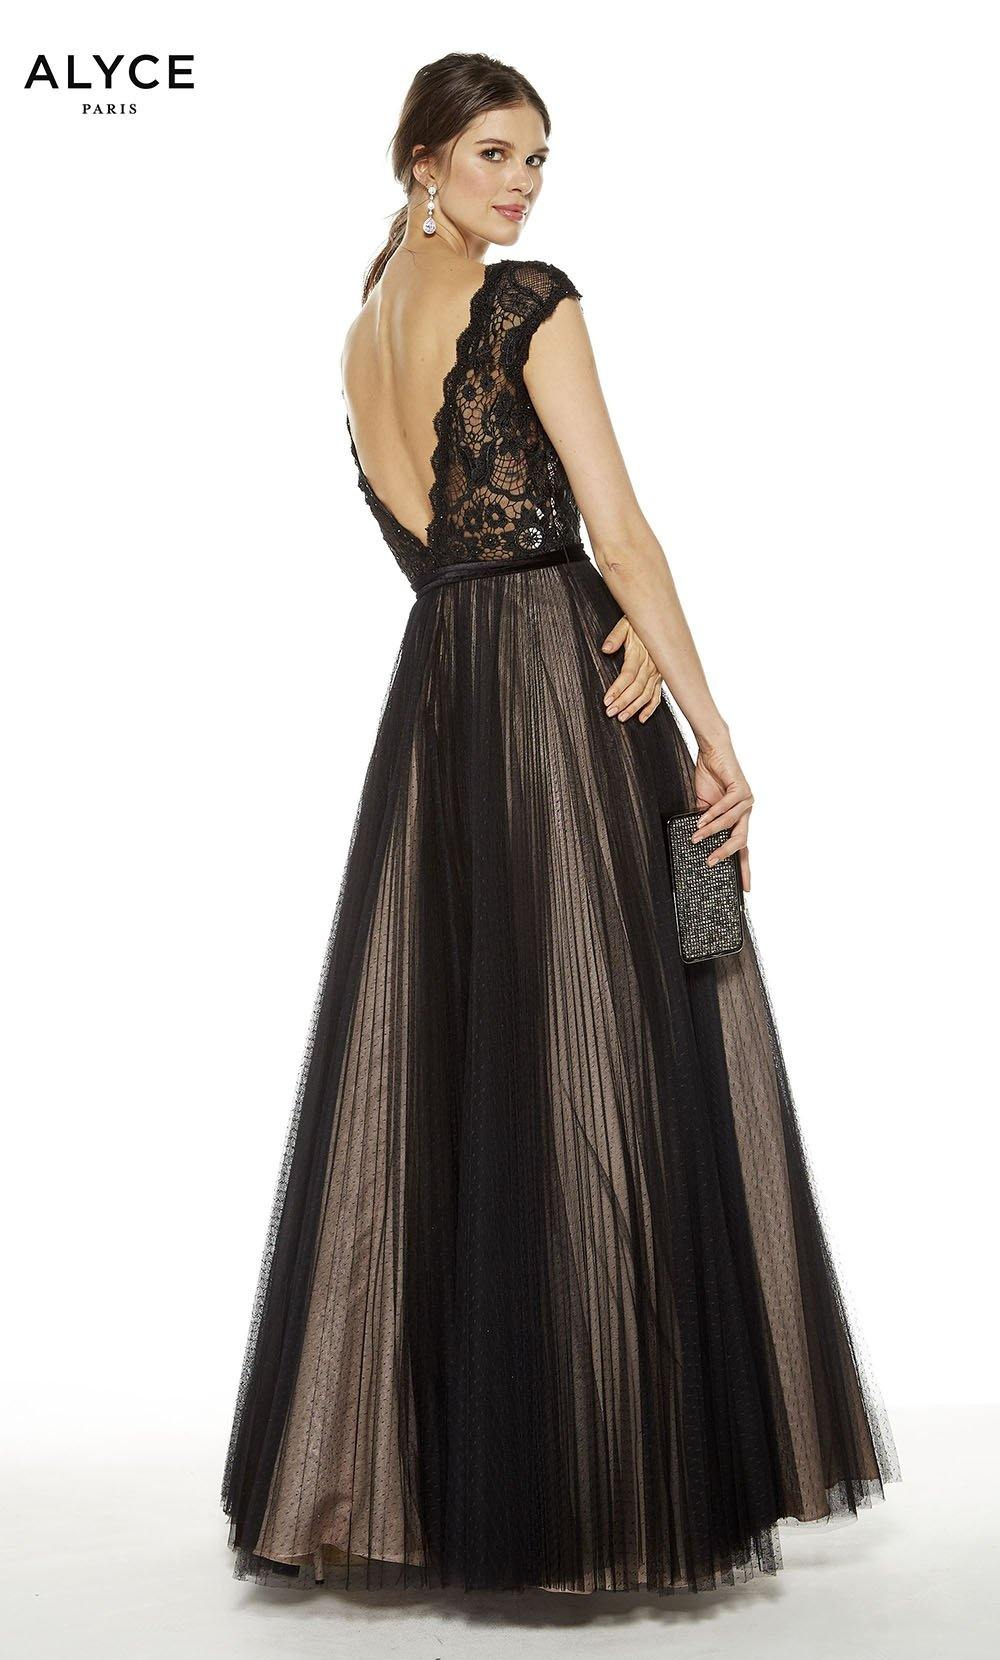 Black-Rosewater formal dress with a v-shaped back